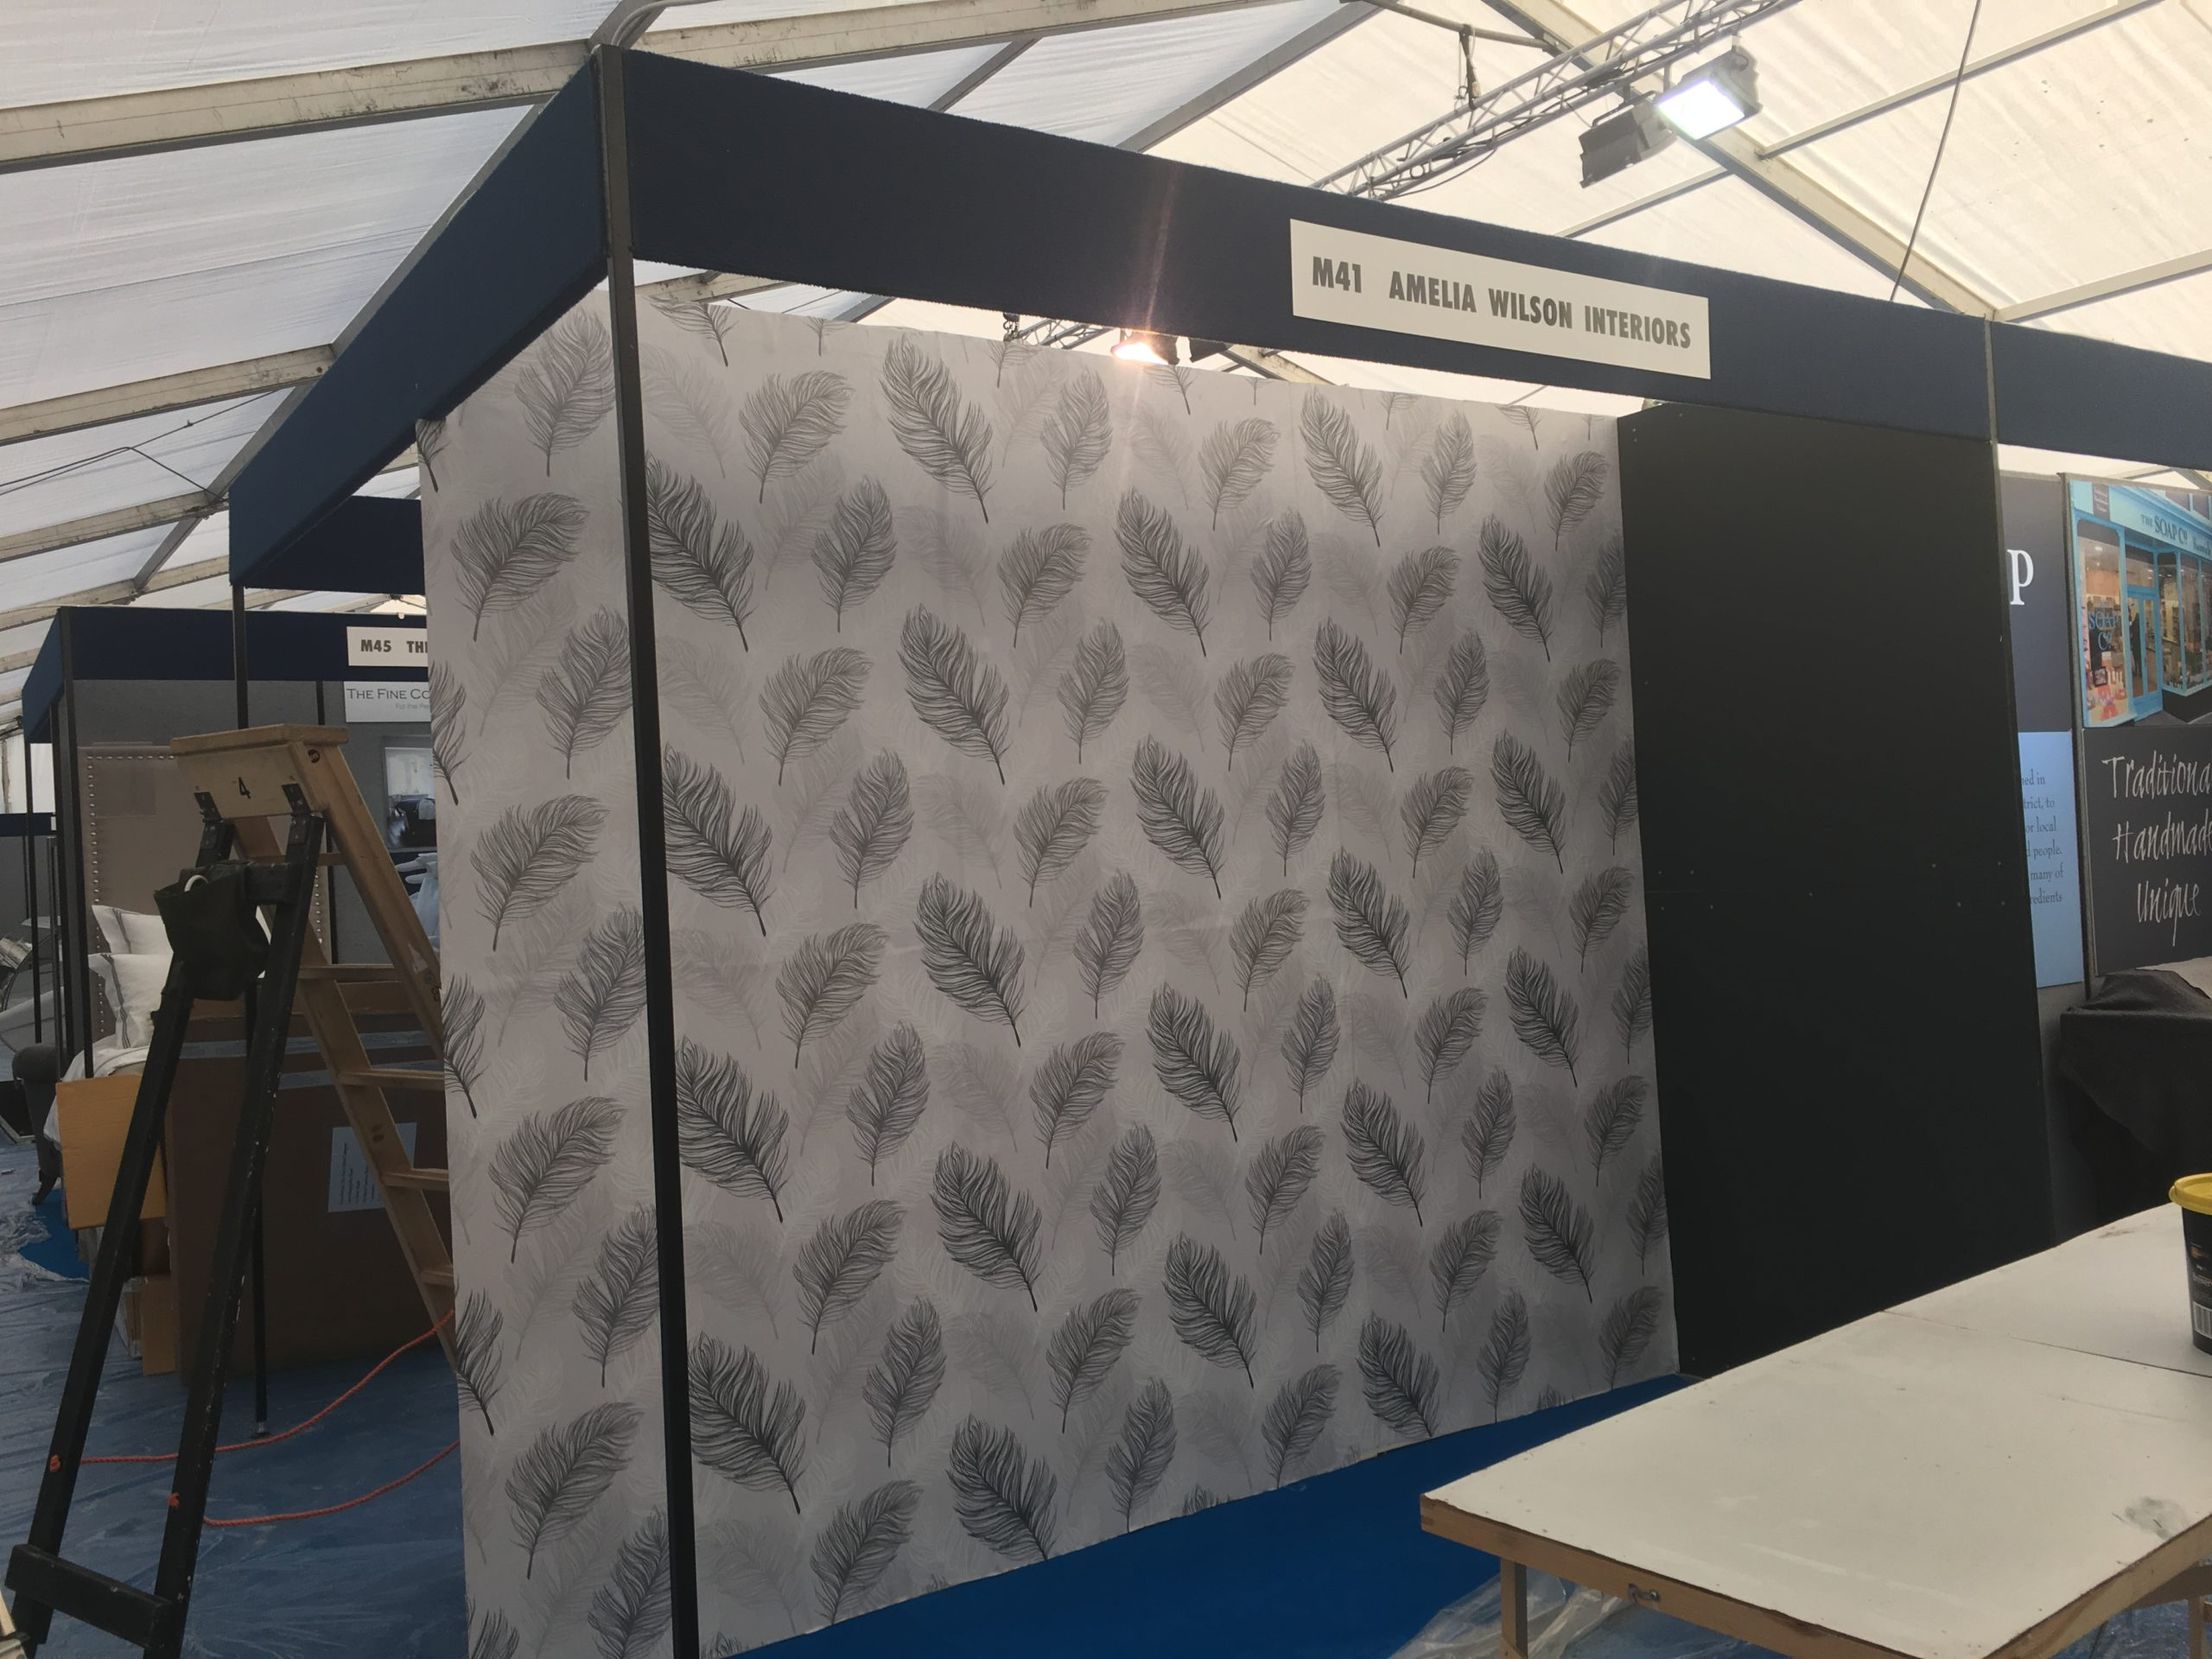 Amelia Wilson Interiors exhibition stand at Lakes Hospitality show. Whisper wallpaper by Arthouse